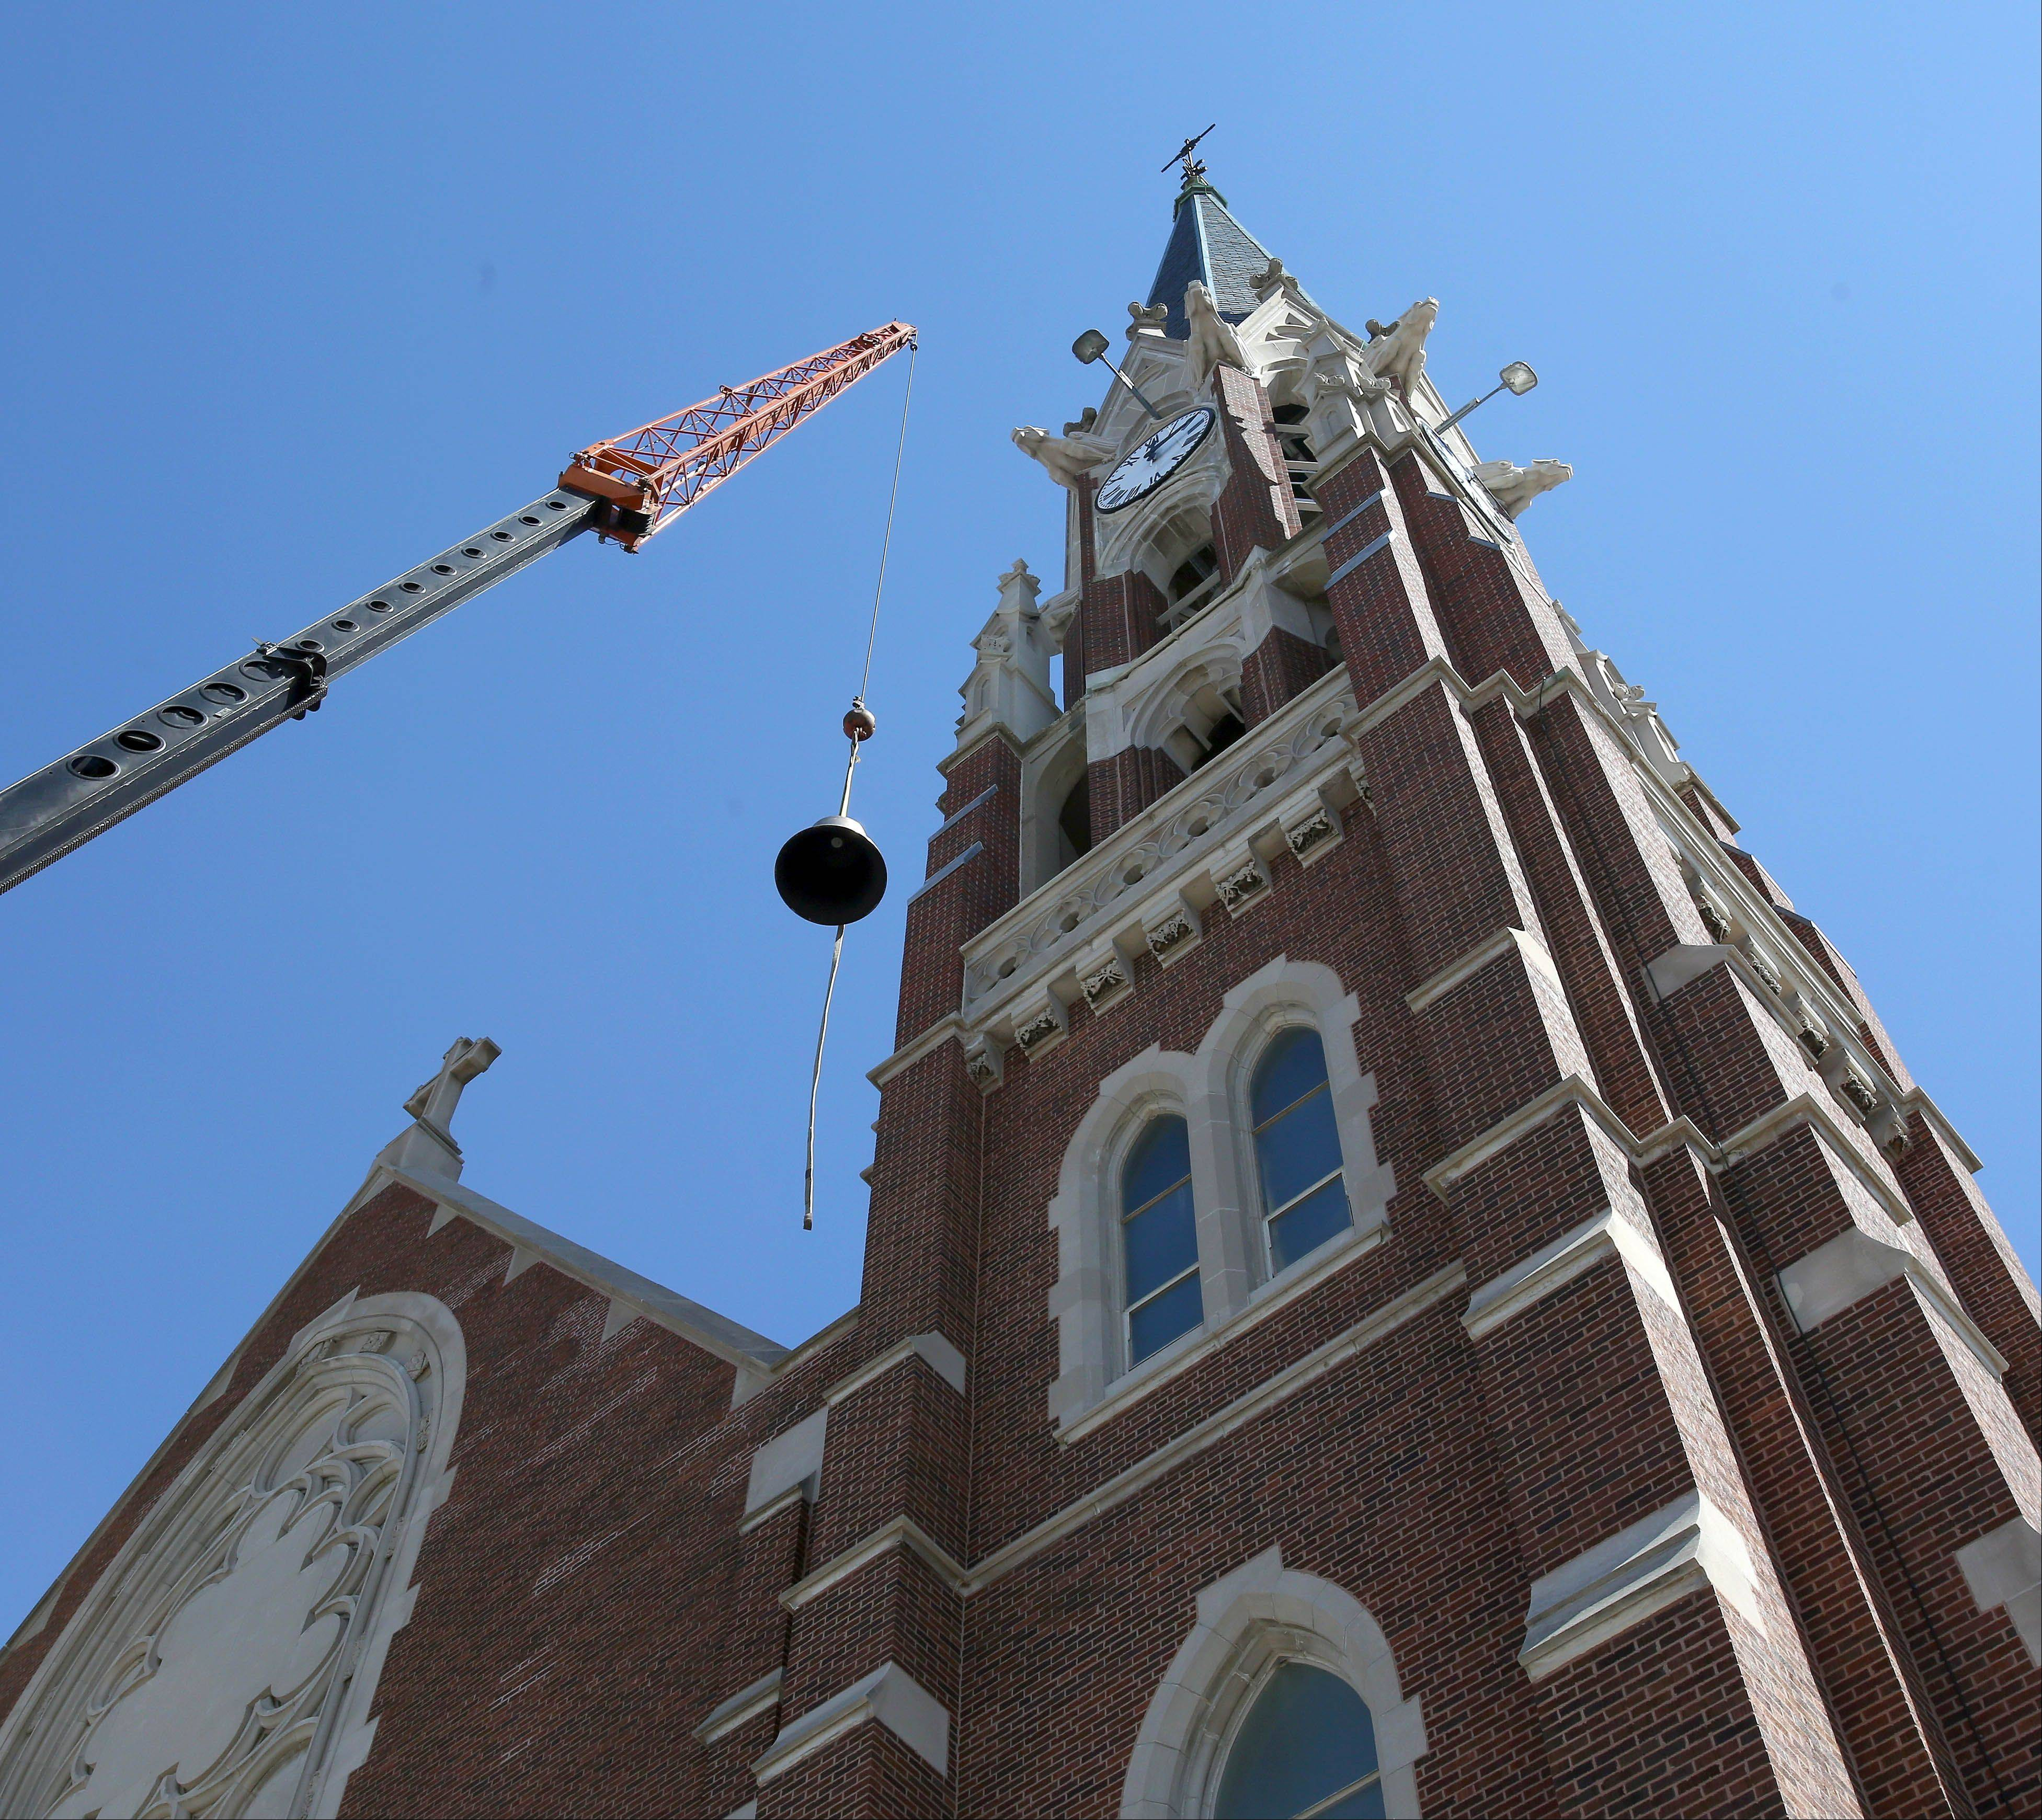 A bell is lifted into the tower Thursday at Naperville's Ss. Peter and Paul Catholic Church near downtown. The church's new bells will ring for the first time over Easter weekend.